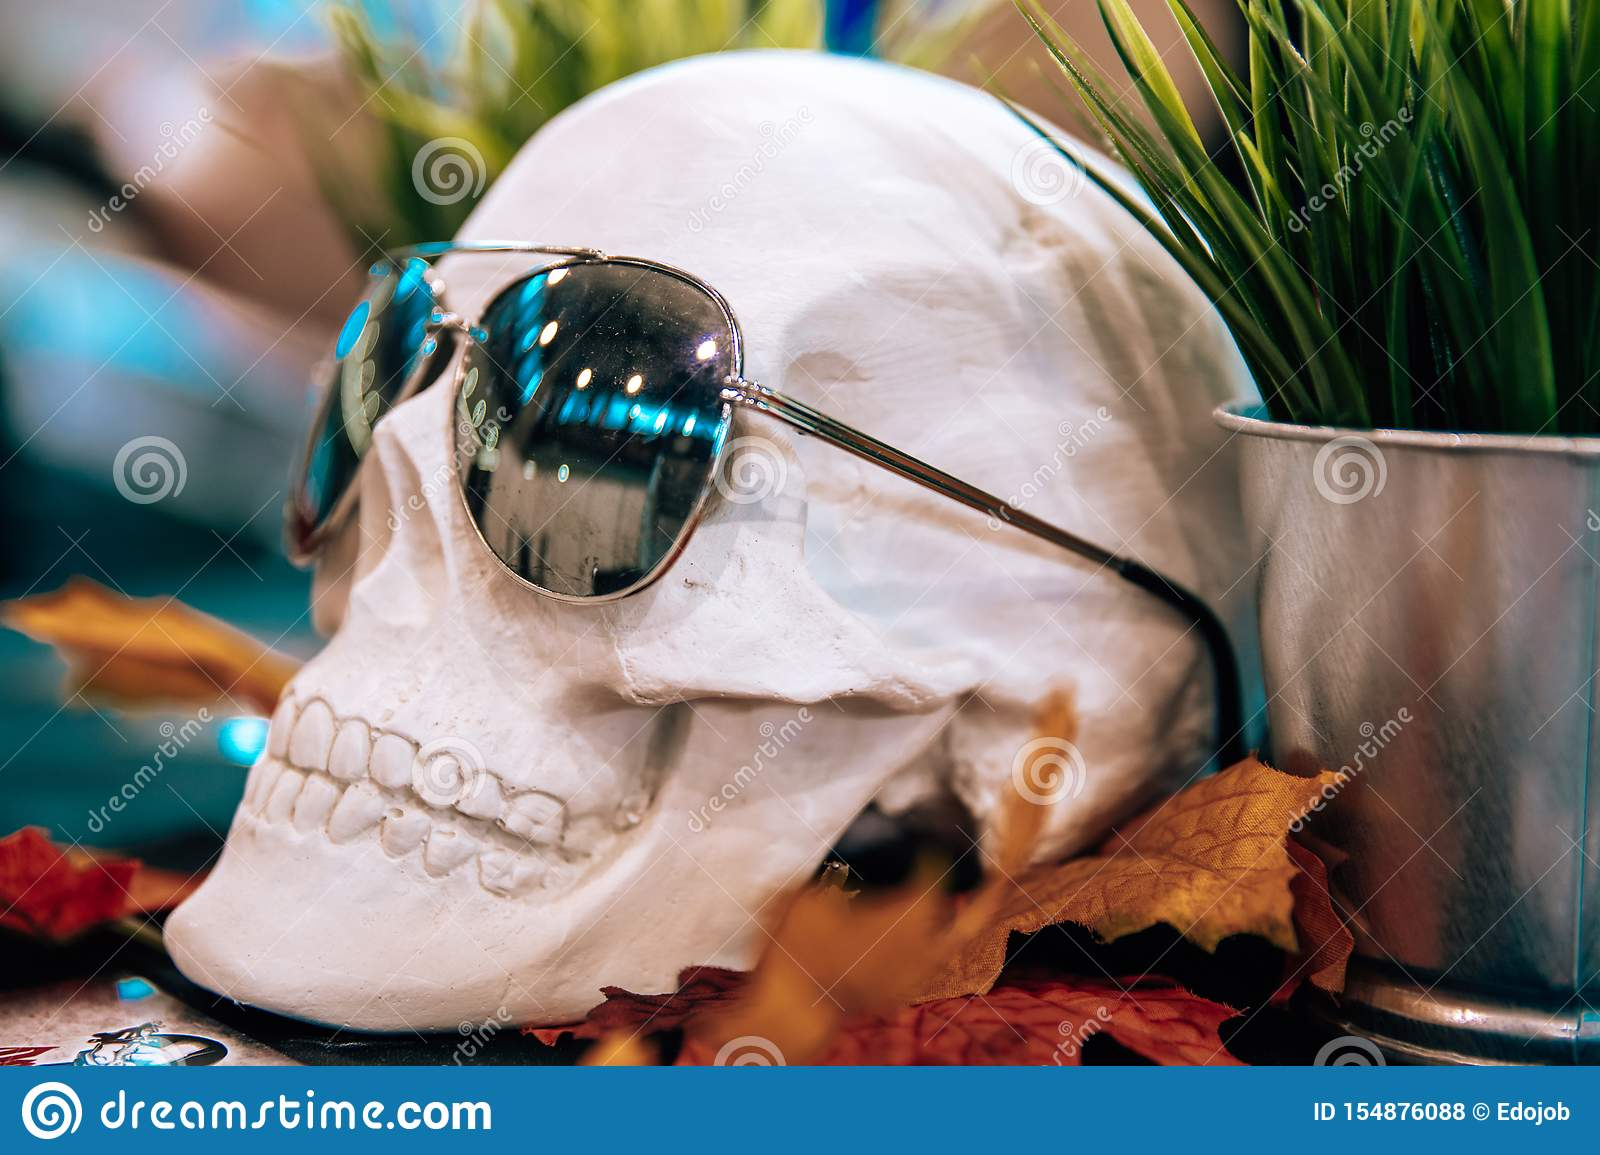 skull with sunglasses in a tattoo studio on the table